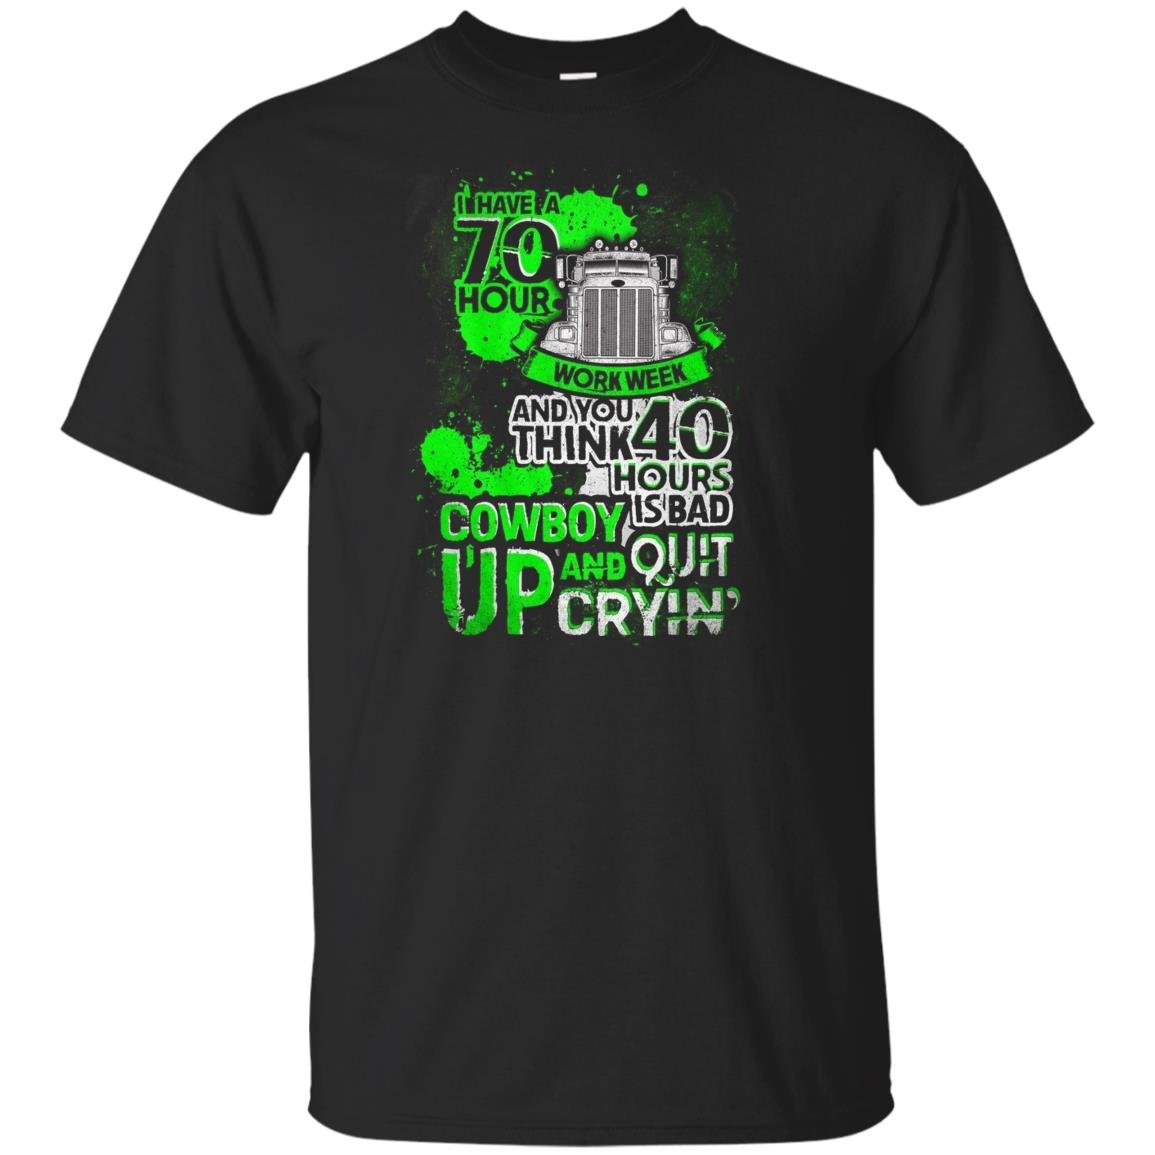 Driver trucker i have 70 hour truck driver T-shirt